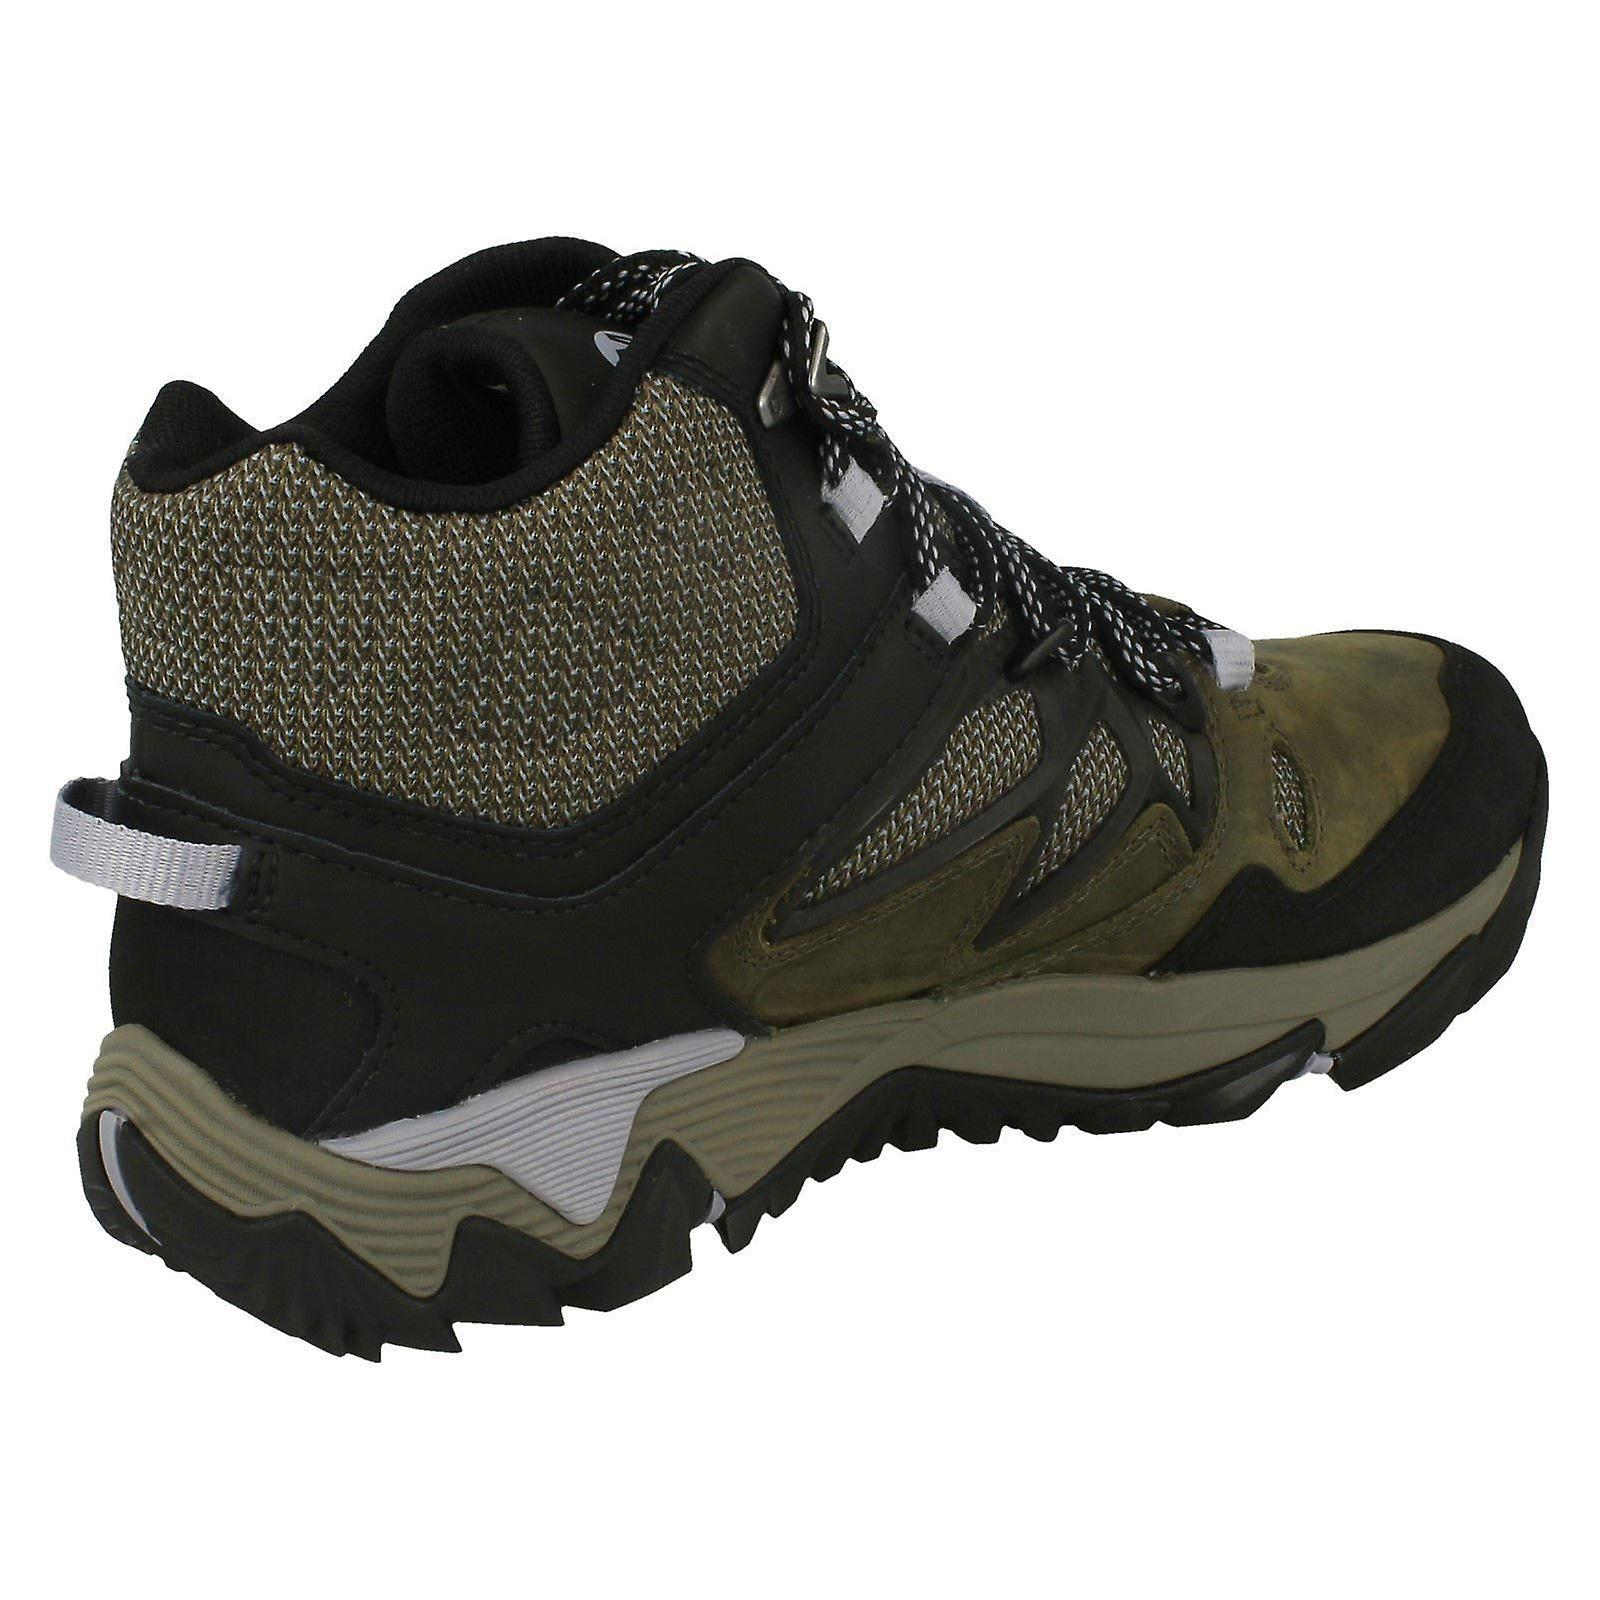 Ladies Merrell Casual Gore-tex Walking Boots All Out Blaze 2 Mid